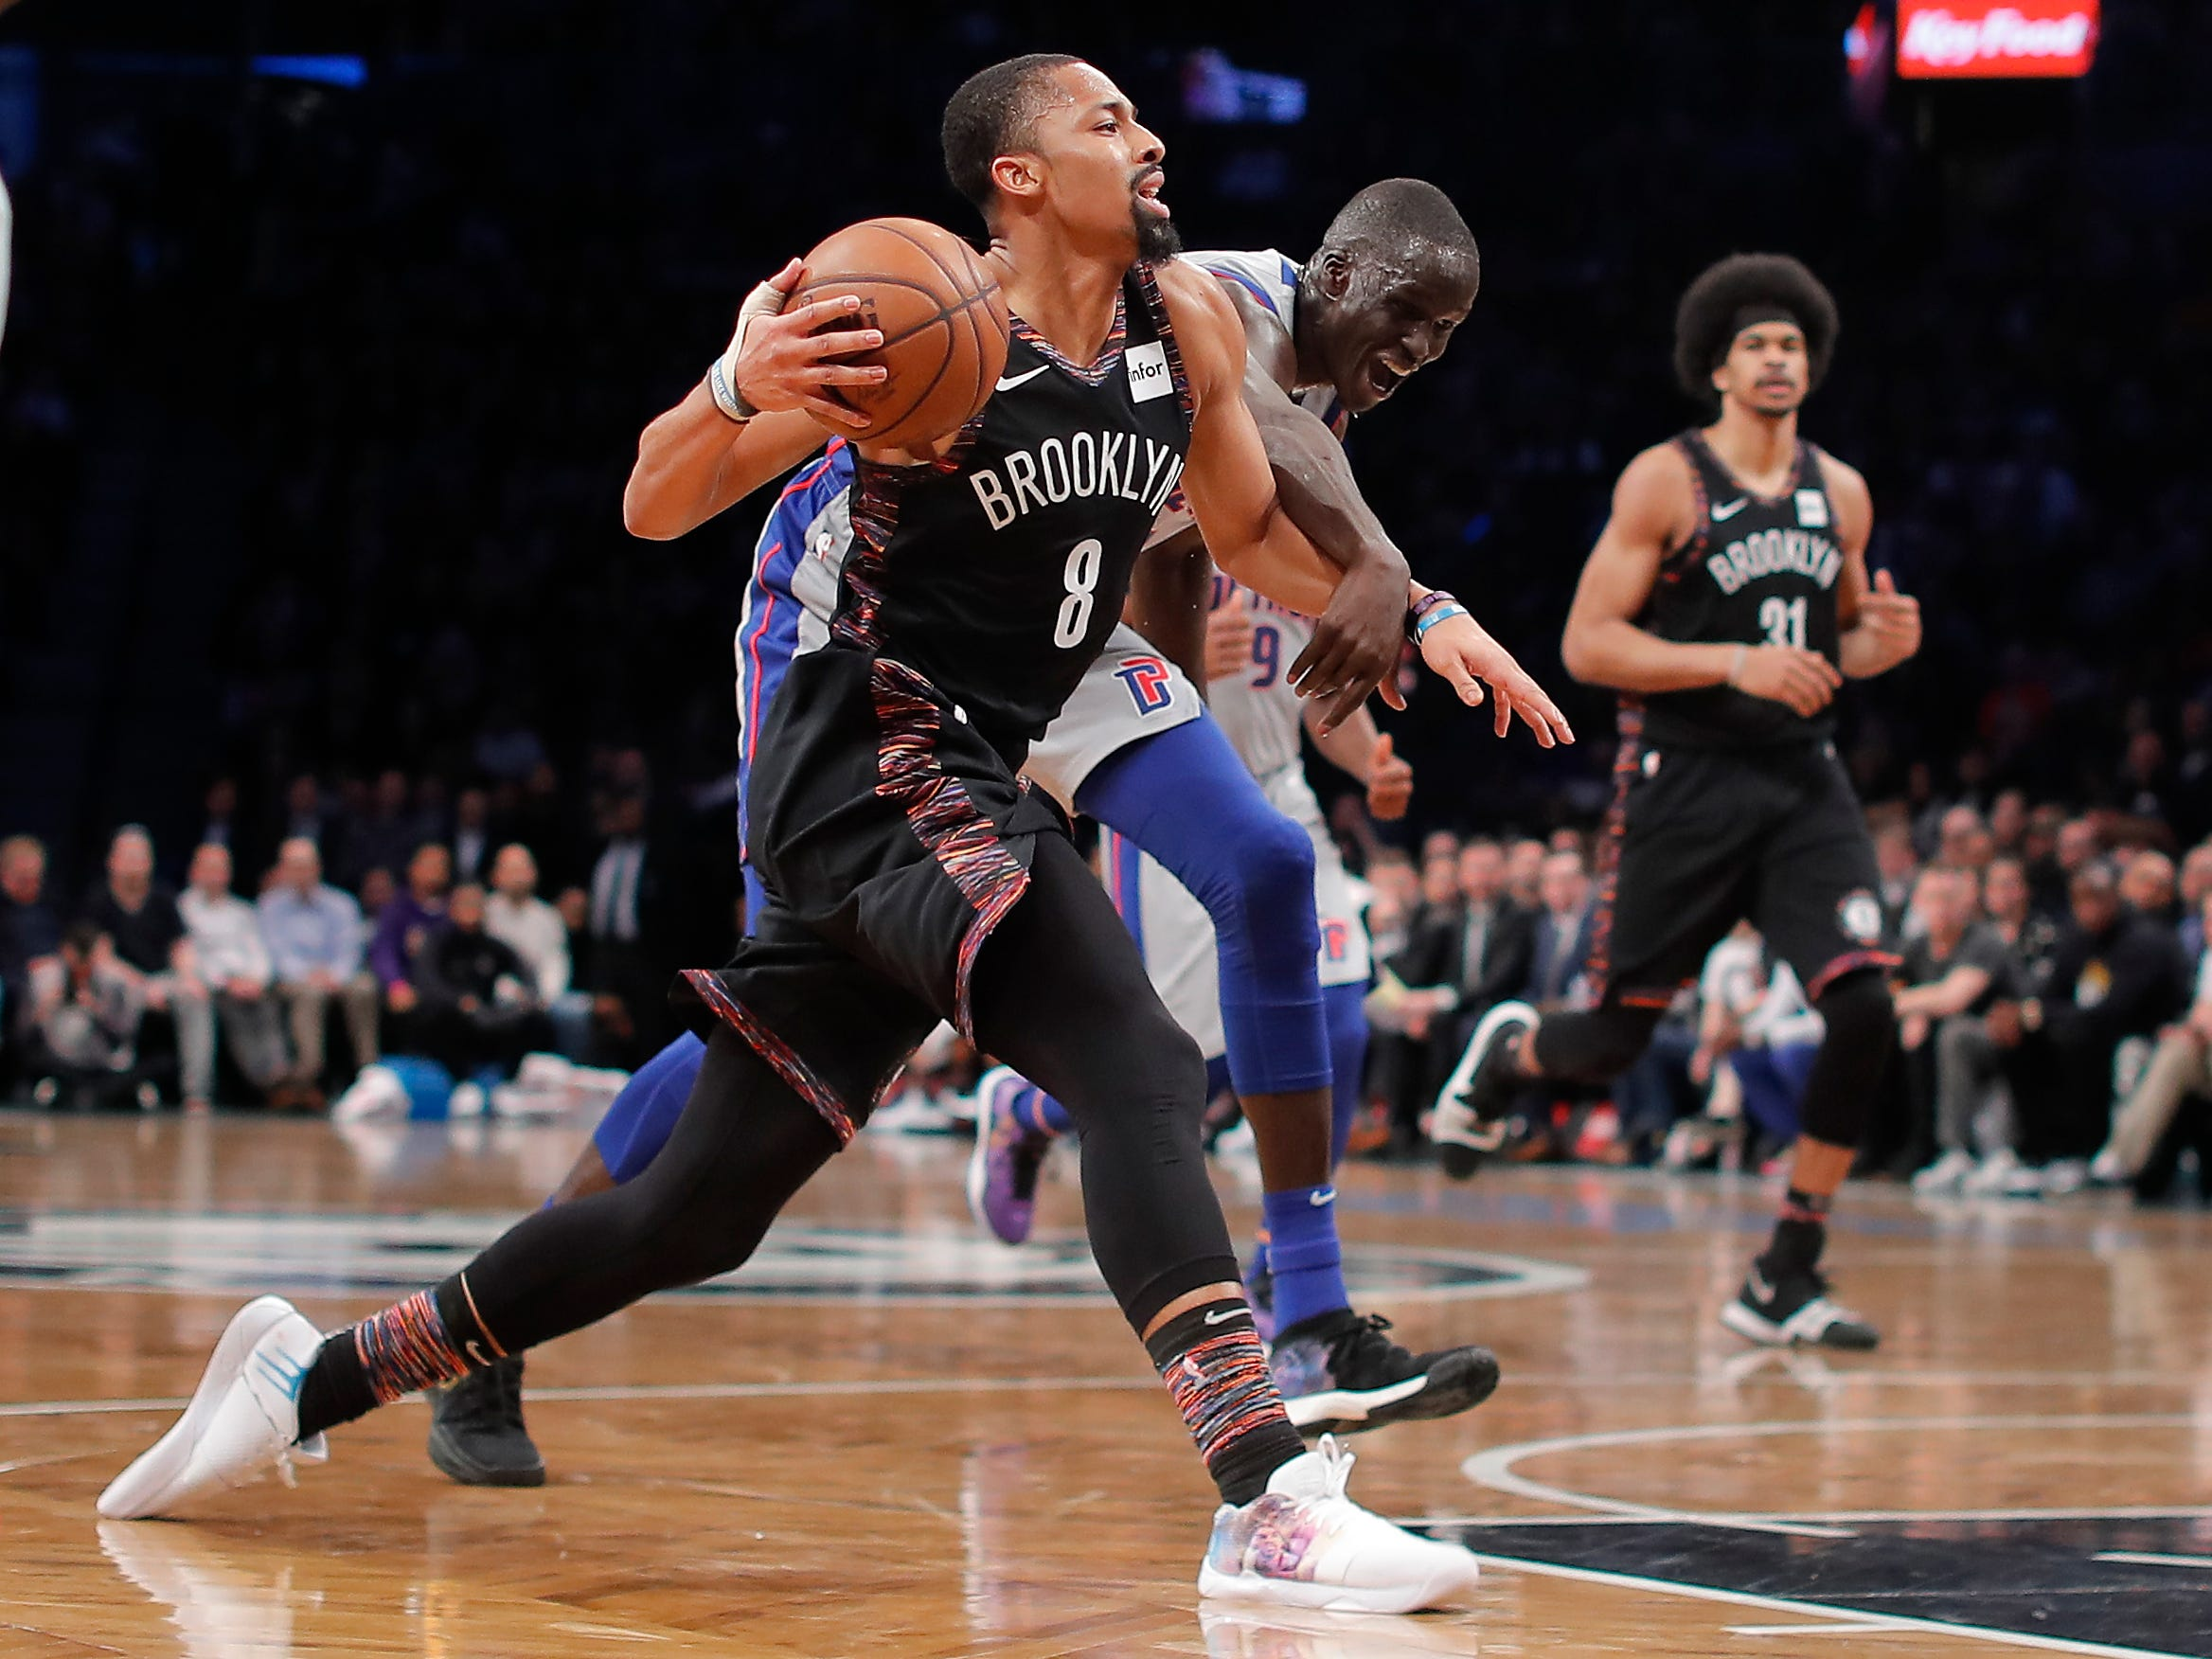 Brooklyn Nets guard Spencer Dinwiddie (8) is fouled as he drives against Detroit Pistons forward Thon Maker (7) during the fourth quarter.